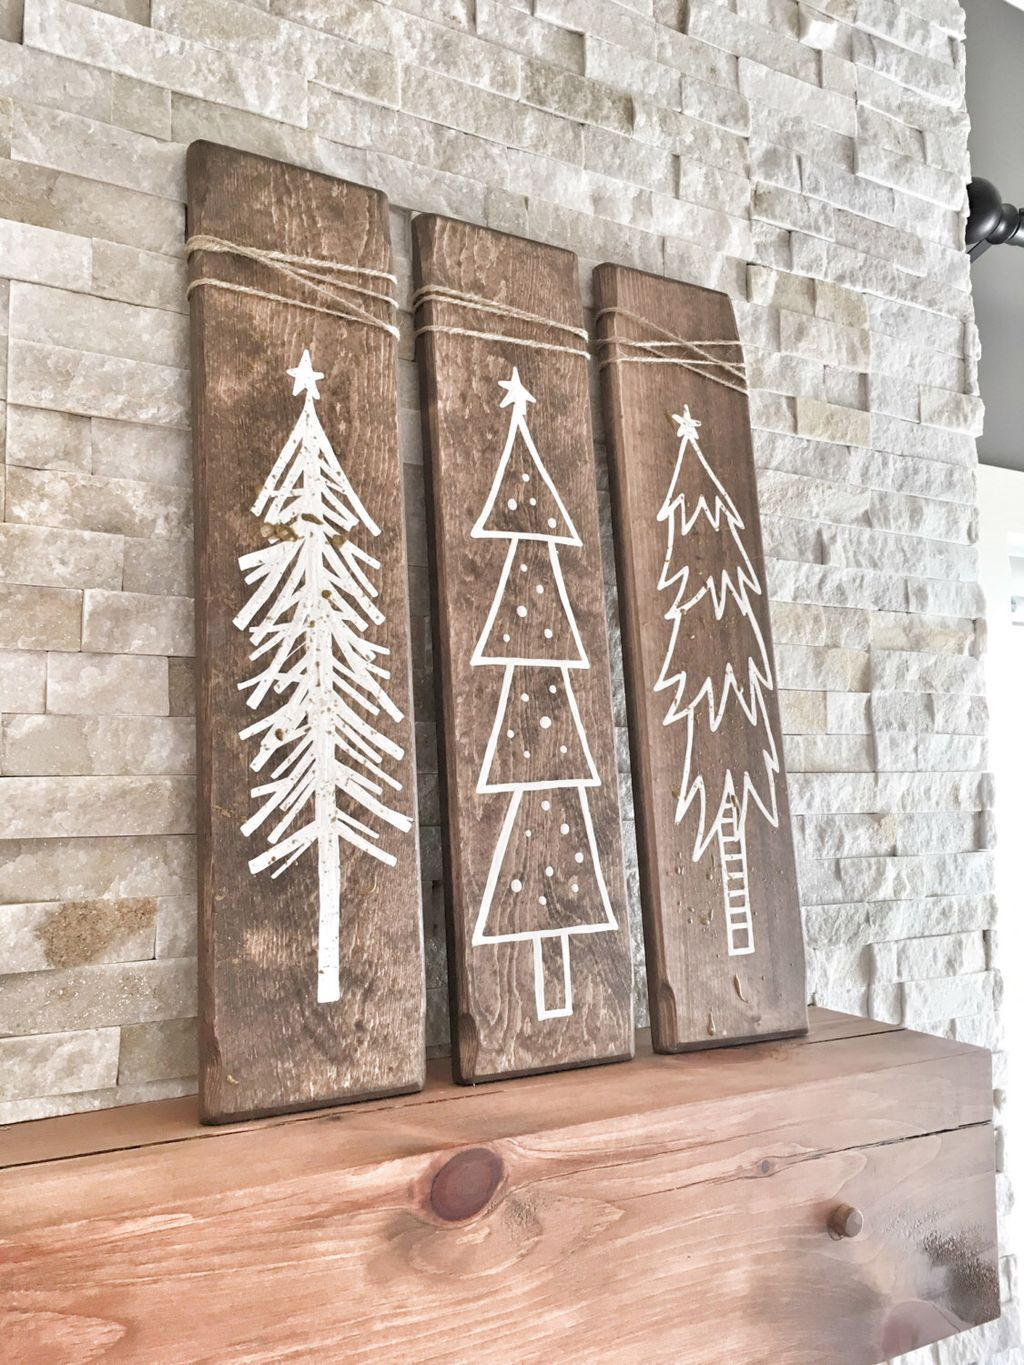 awesome 47 Totally Inspiring Farmhouse Christmas Decoration Ideas to Makes Your Home Stands Out  https://homedecorish.com/2017/11/07/47-totally-inspiring-farmhouse-christmas-decoration-ideas-to-makes-your-home-stands-out/